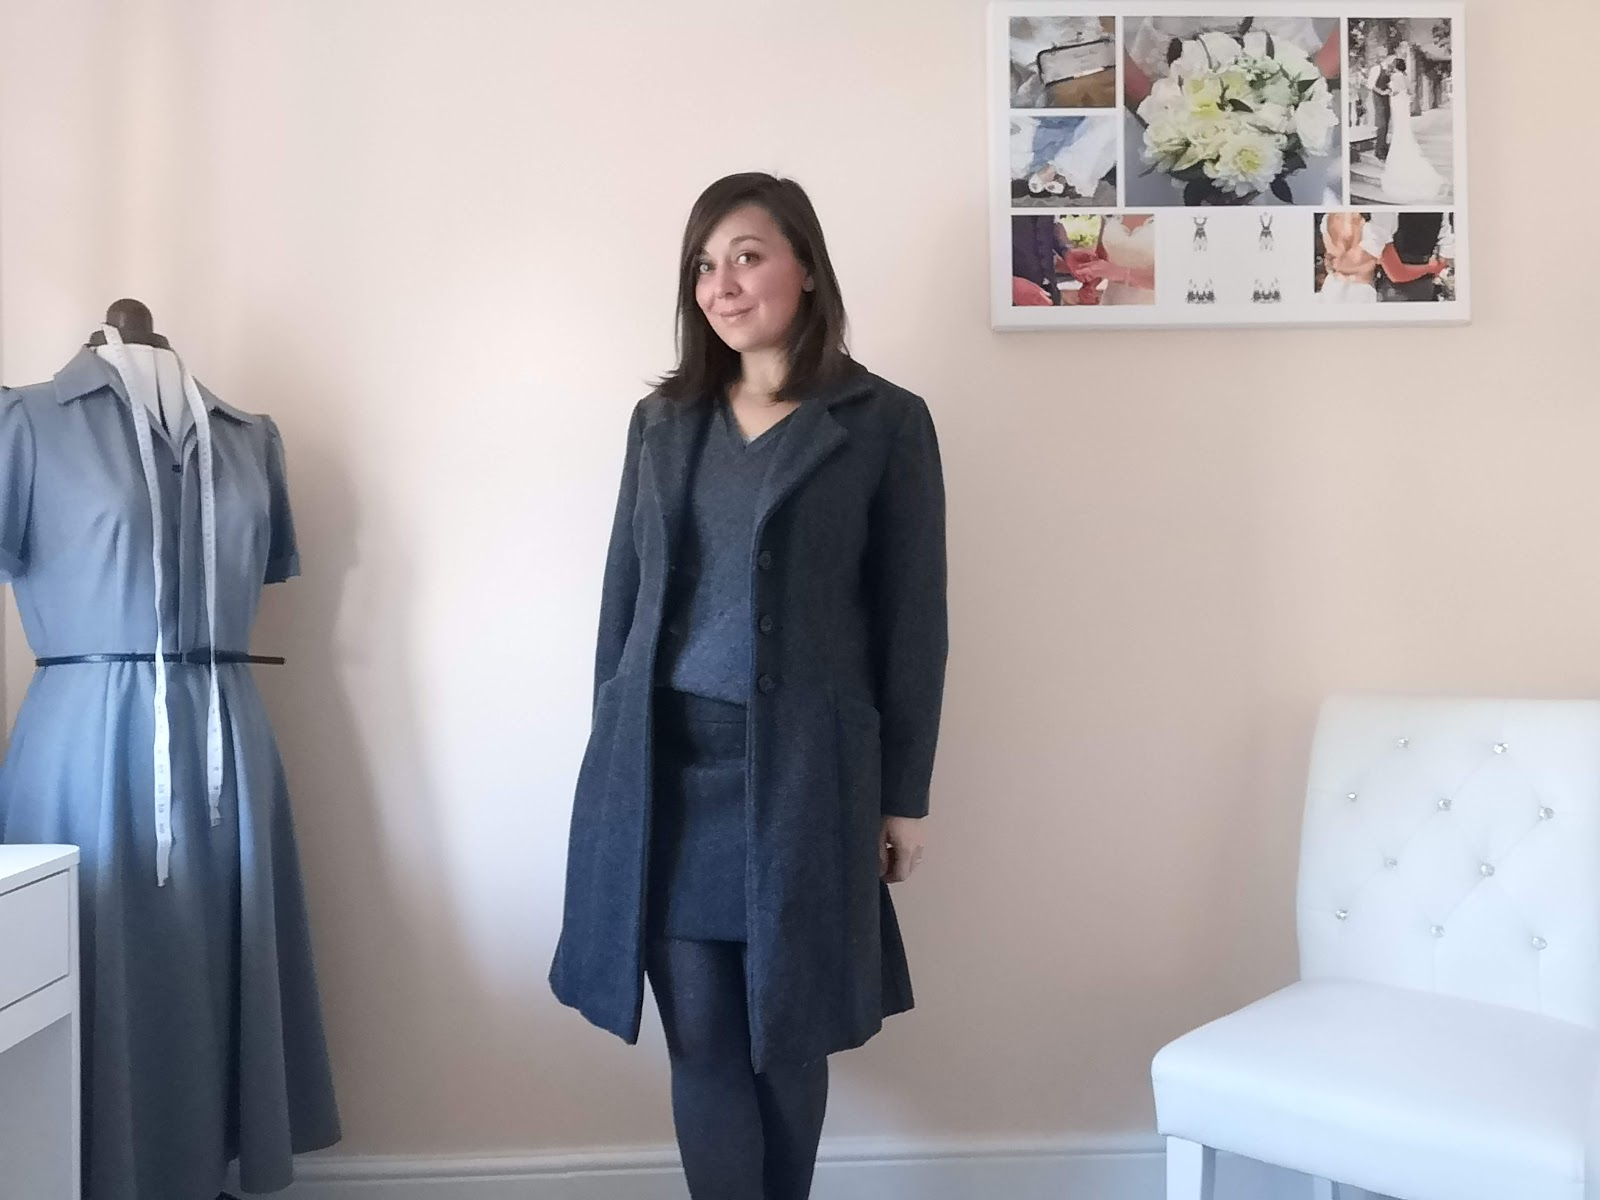 Bluprint Class Review: Couture Dressmaking Techniques and Couture Finishing Techniques